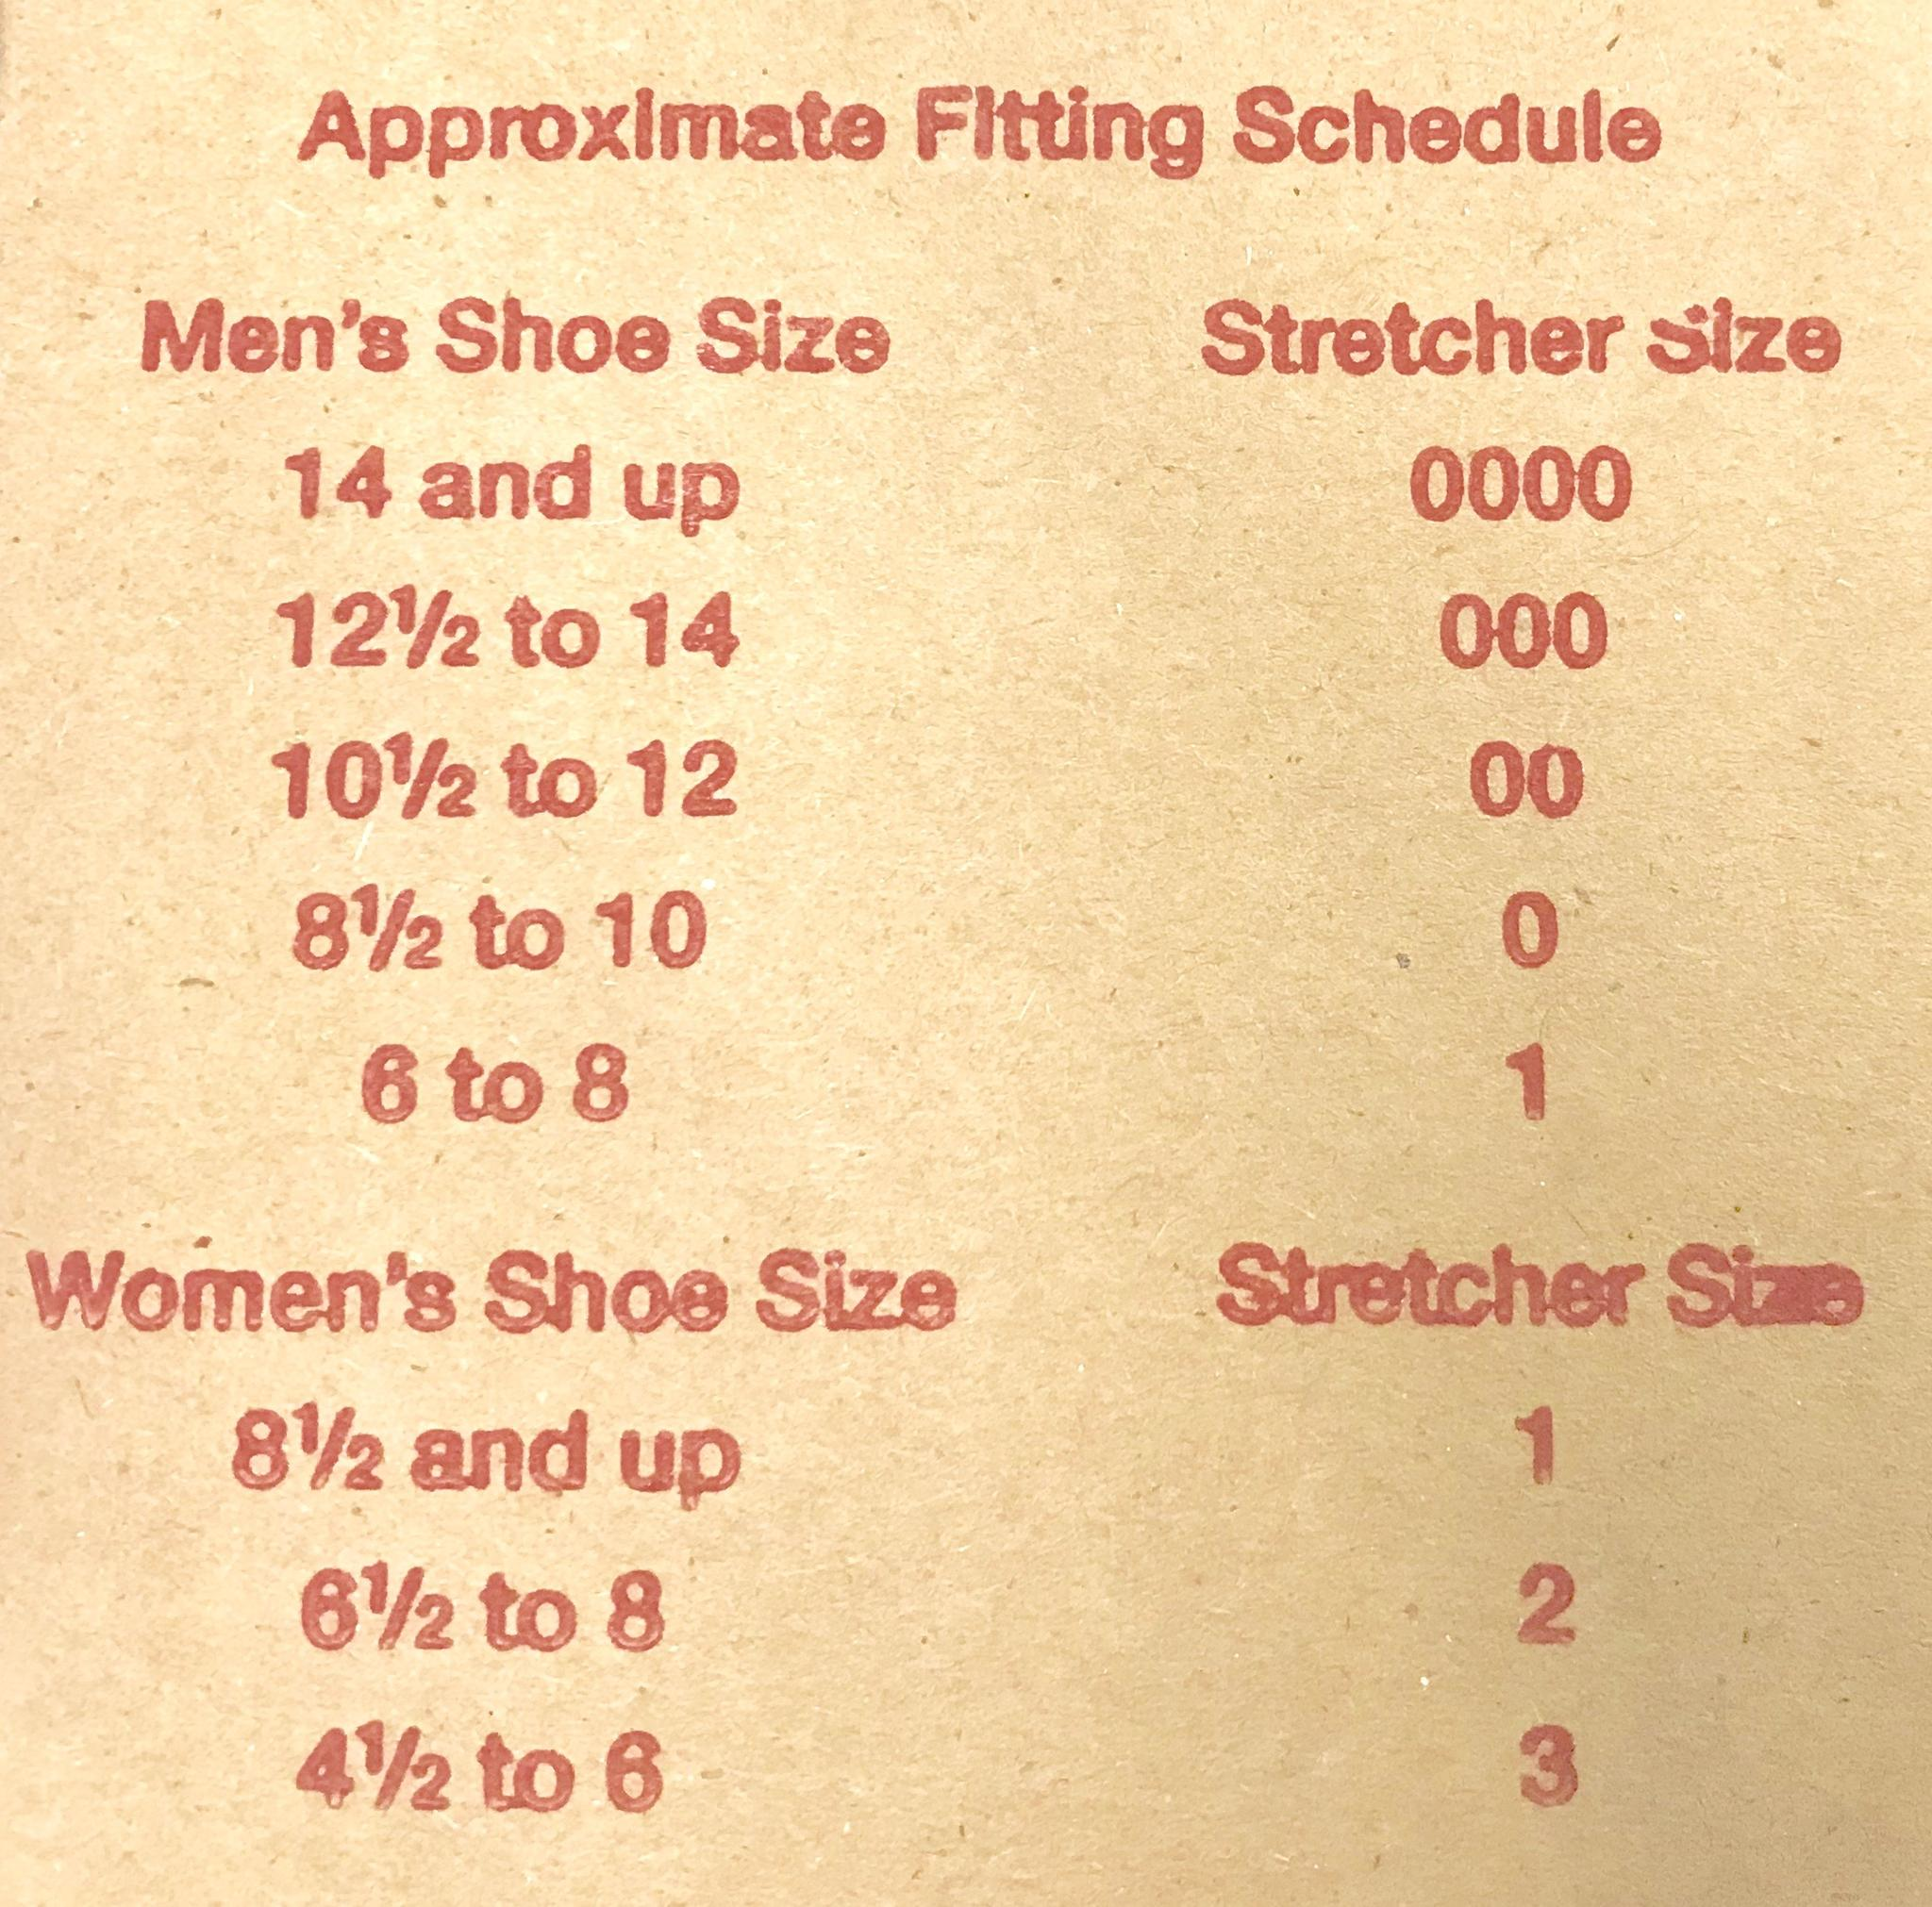 Shoe stretcher size chart